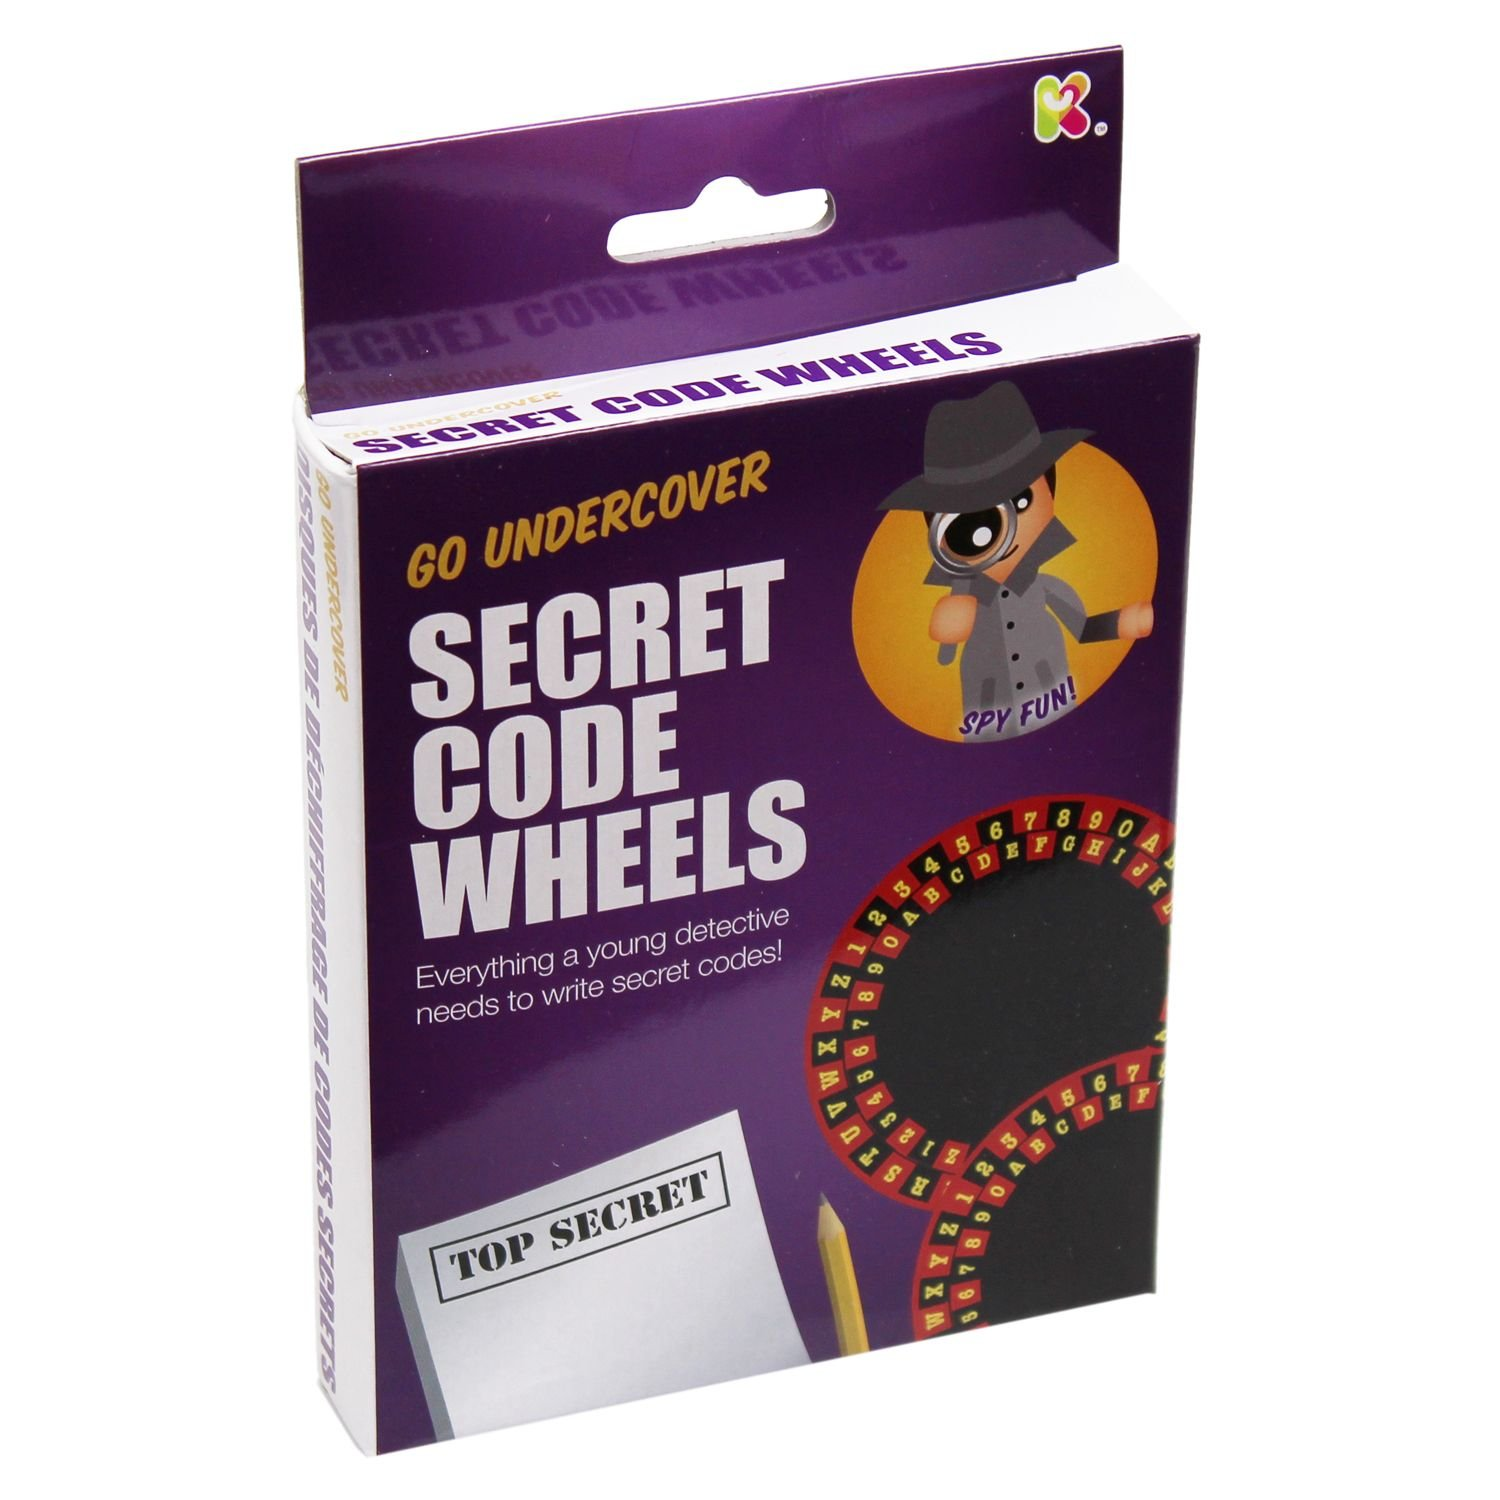 Secret Code Wheels Kit Science Activity Toy by Carousel Keycraft